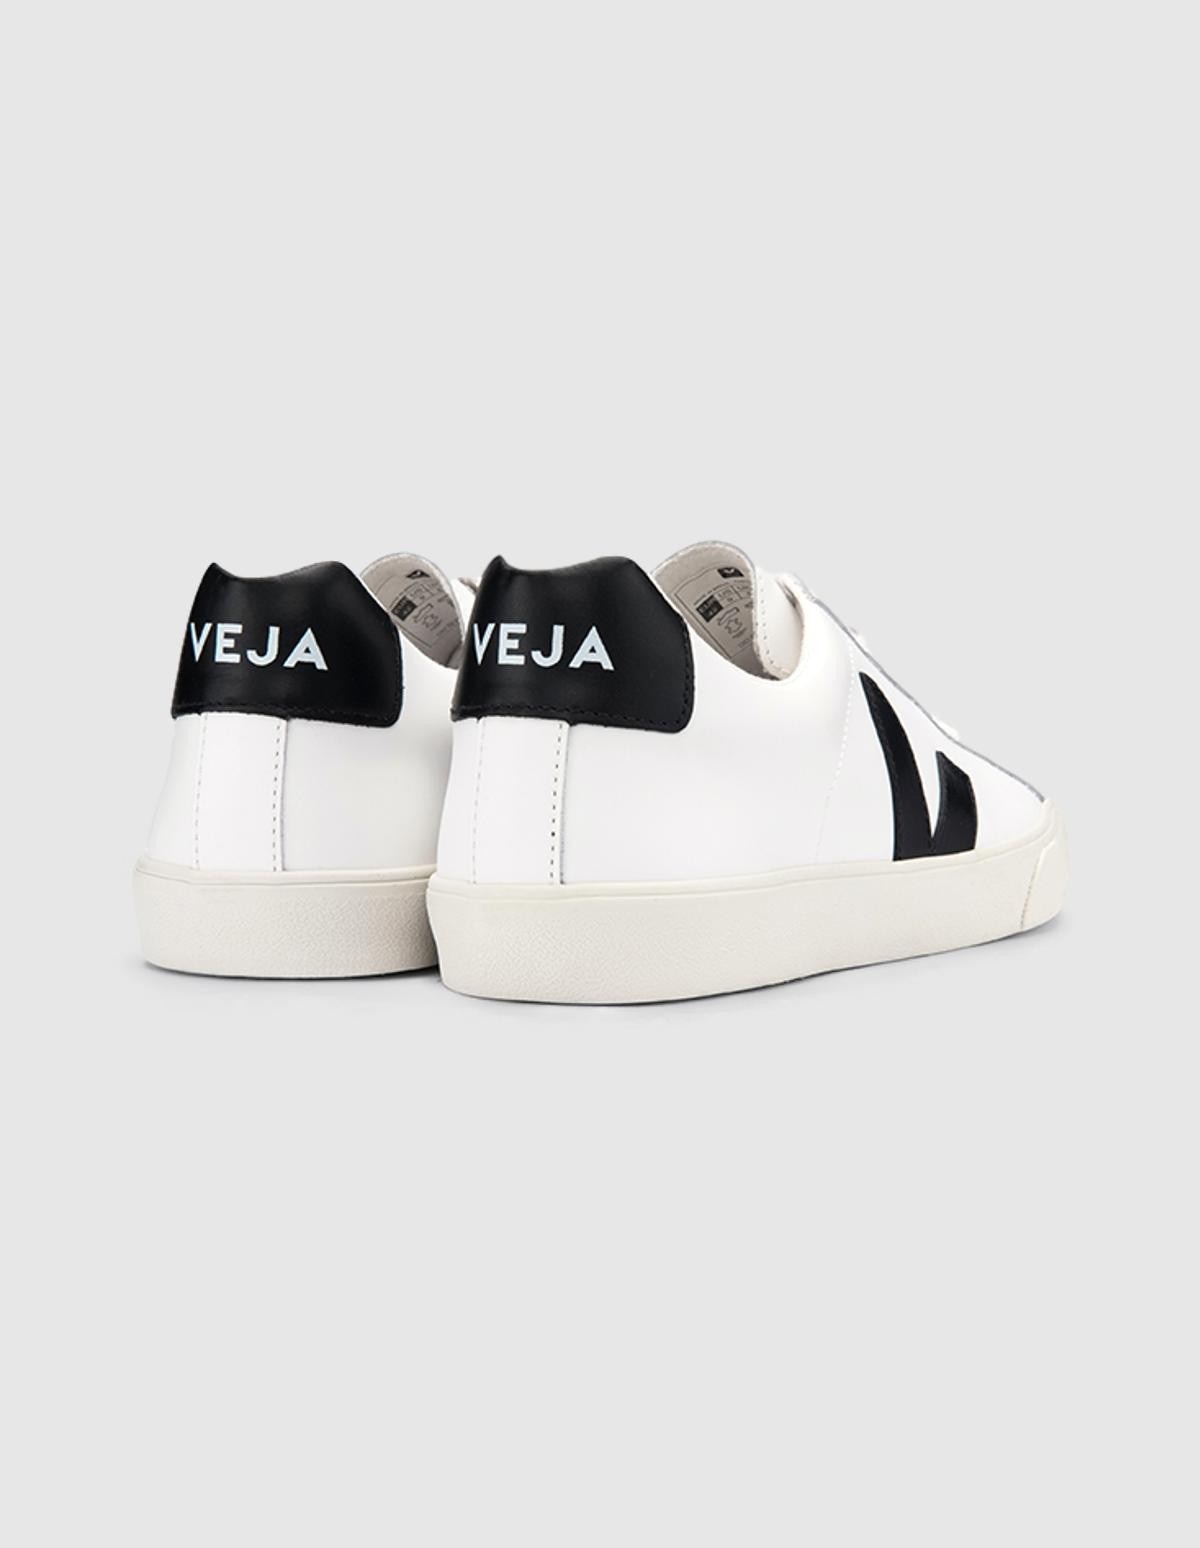 Veja Esplar Leather in  Extra White Black